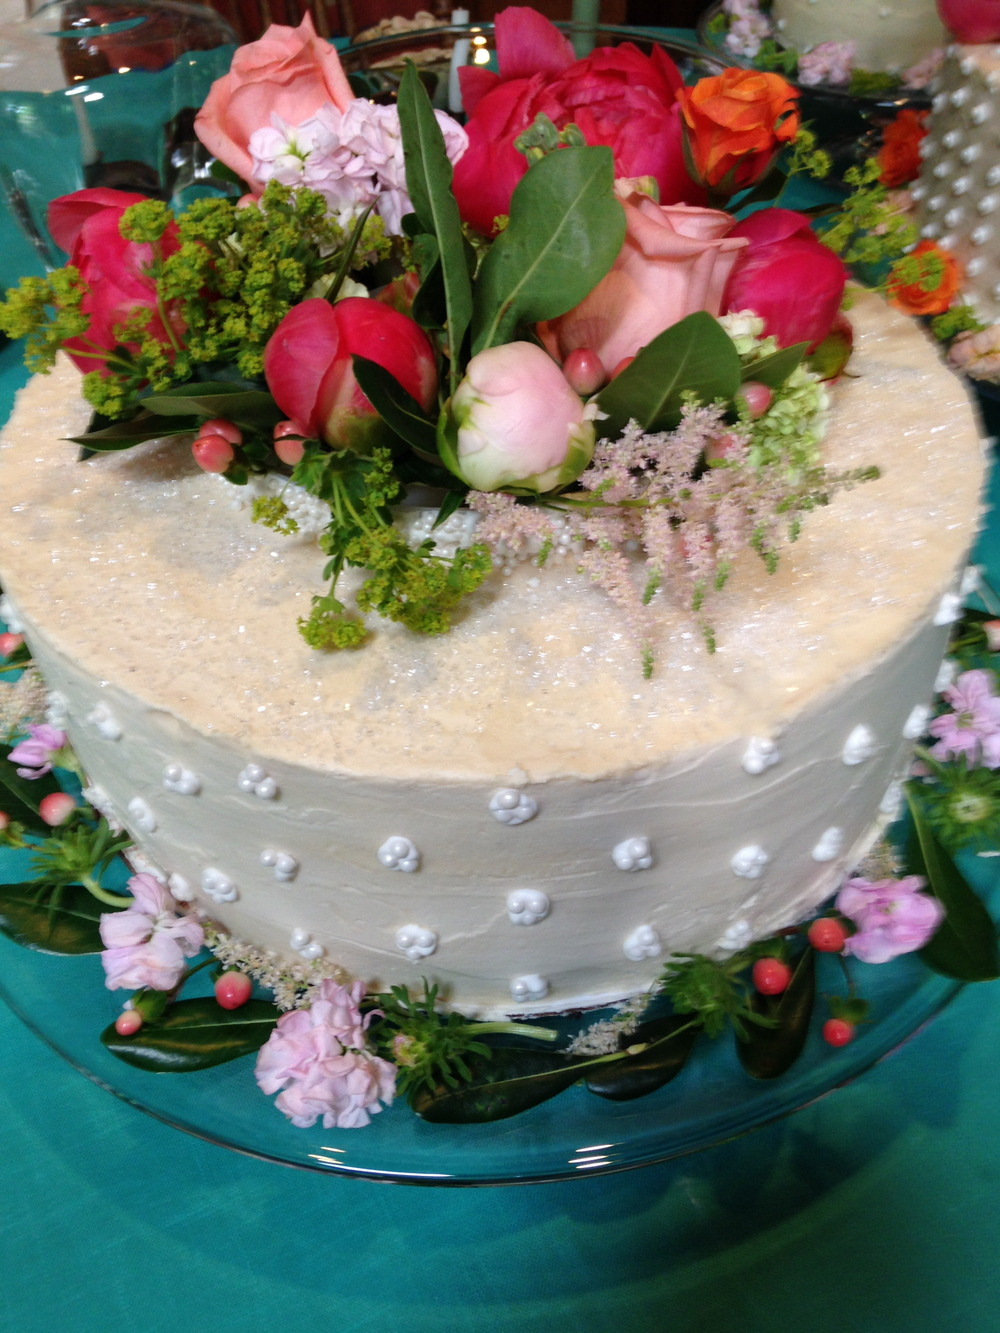 Do flowers make the cake?